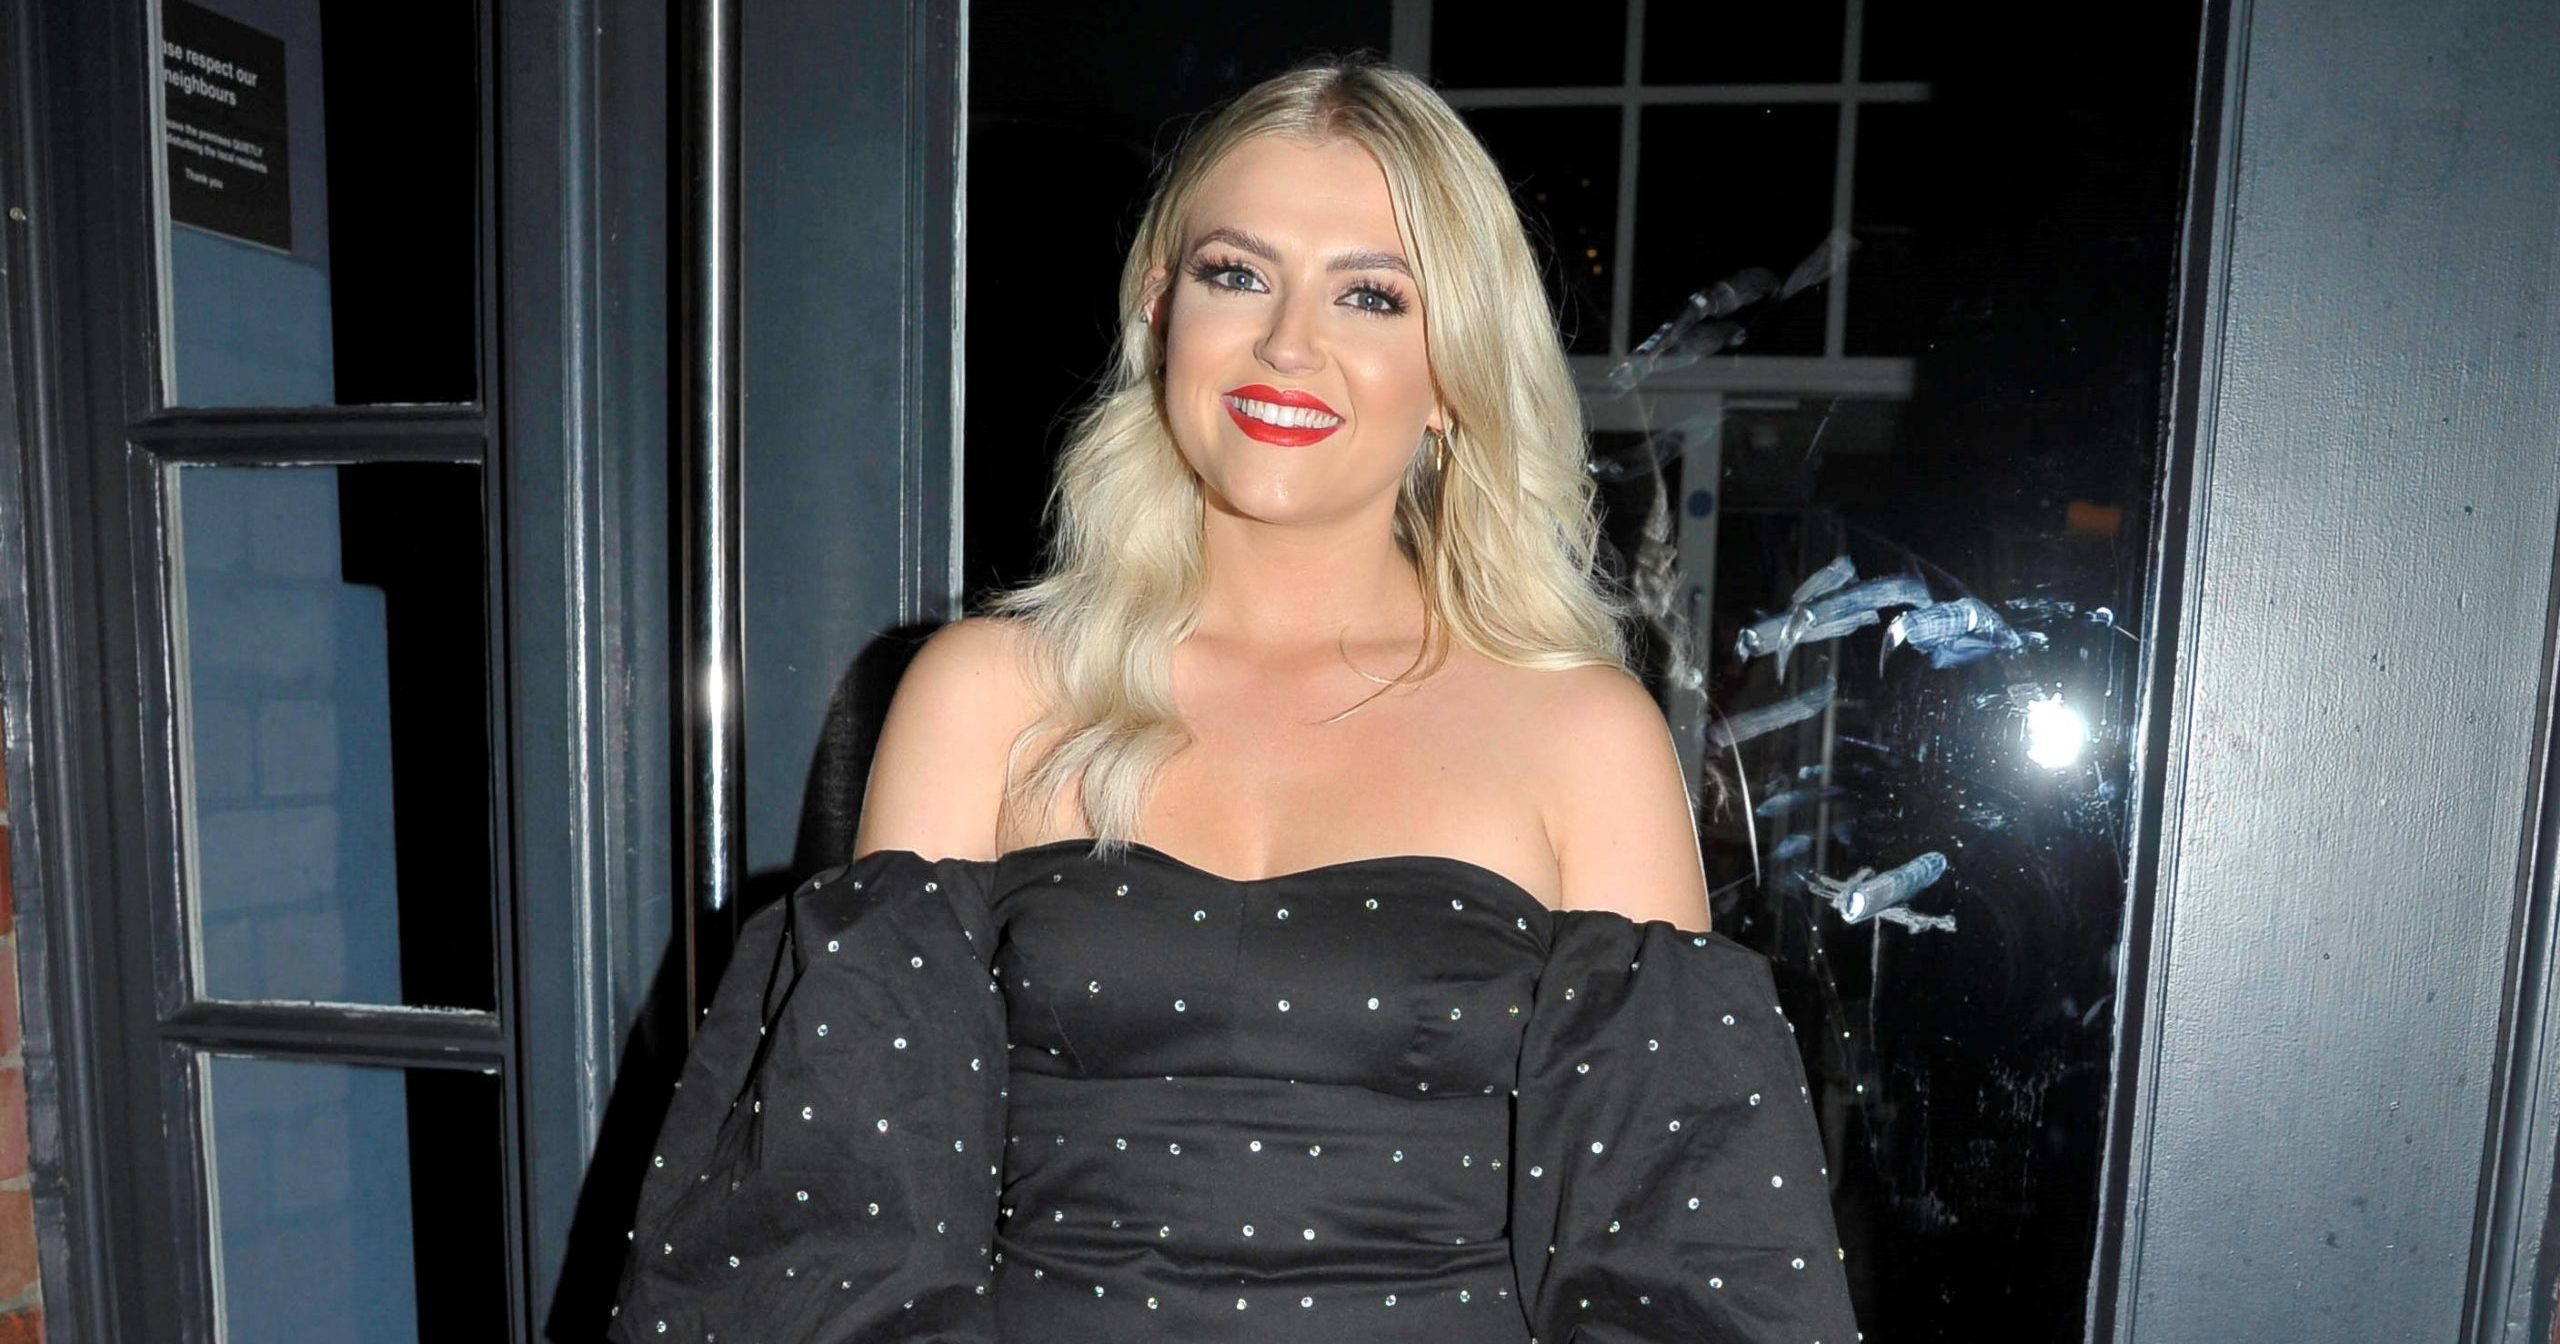 Former Coronation Street star Lucy Fallon selling her clothes online as coronavirus stops TV productions